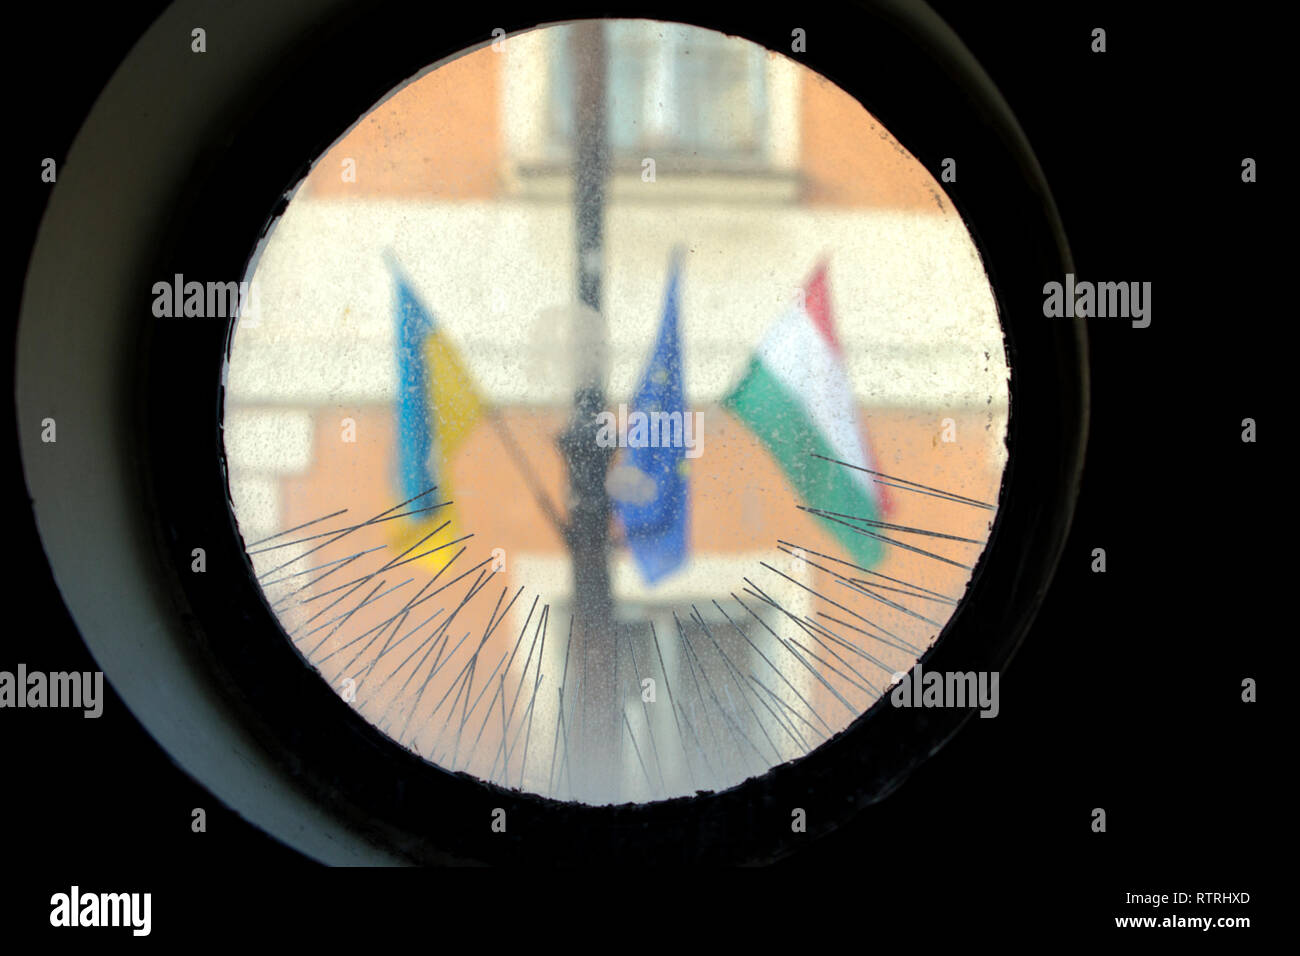 Hungarian and European Union flags surrounded by thorns as seen from a church window's round blurred glass. - Stock Image